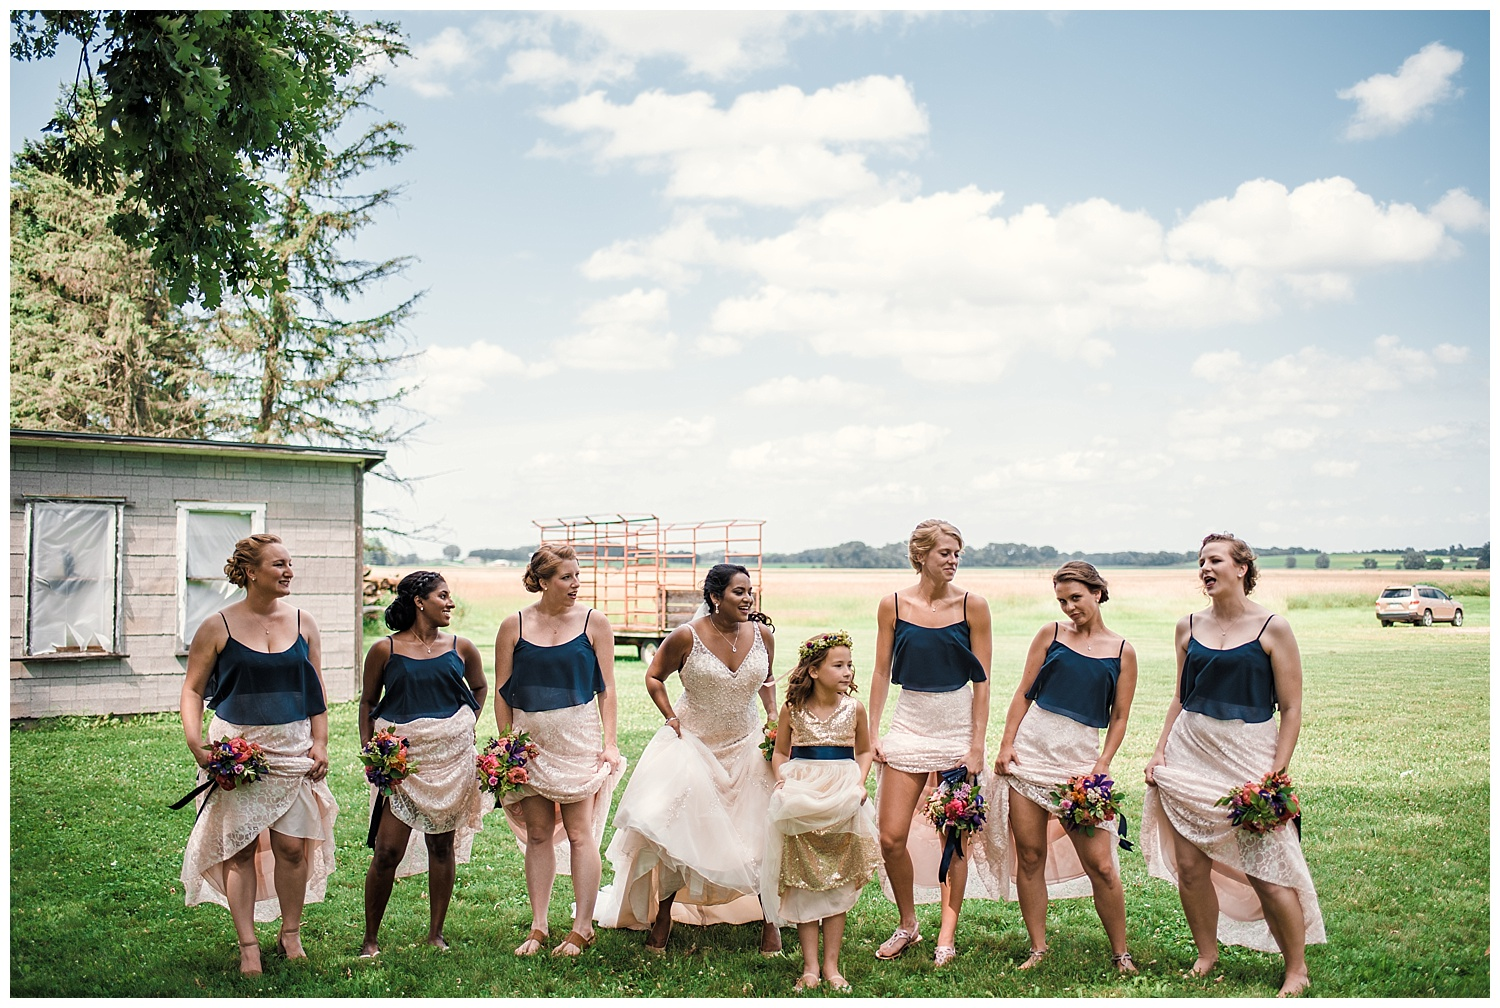 badger farms wisconsin wedding, wisconsin wedding, summer wedding, madison wedding, madison summer wedding, traveling photographer, badger farms, wedding party, bridal party, navy blue bridesmaids dresses, white lace wedding dress, diamond necklace, summer flower bouquet, outdoor wedding, flower girl